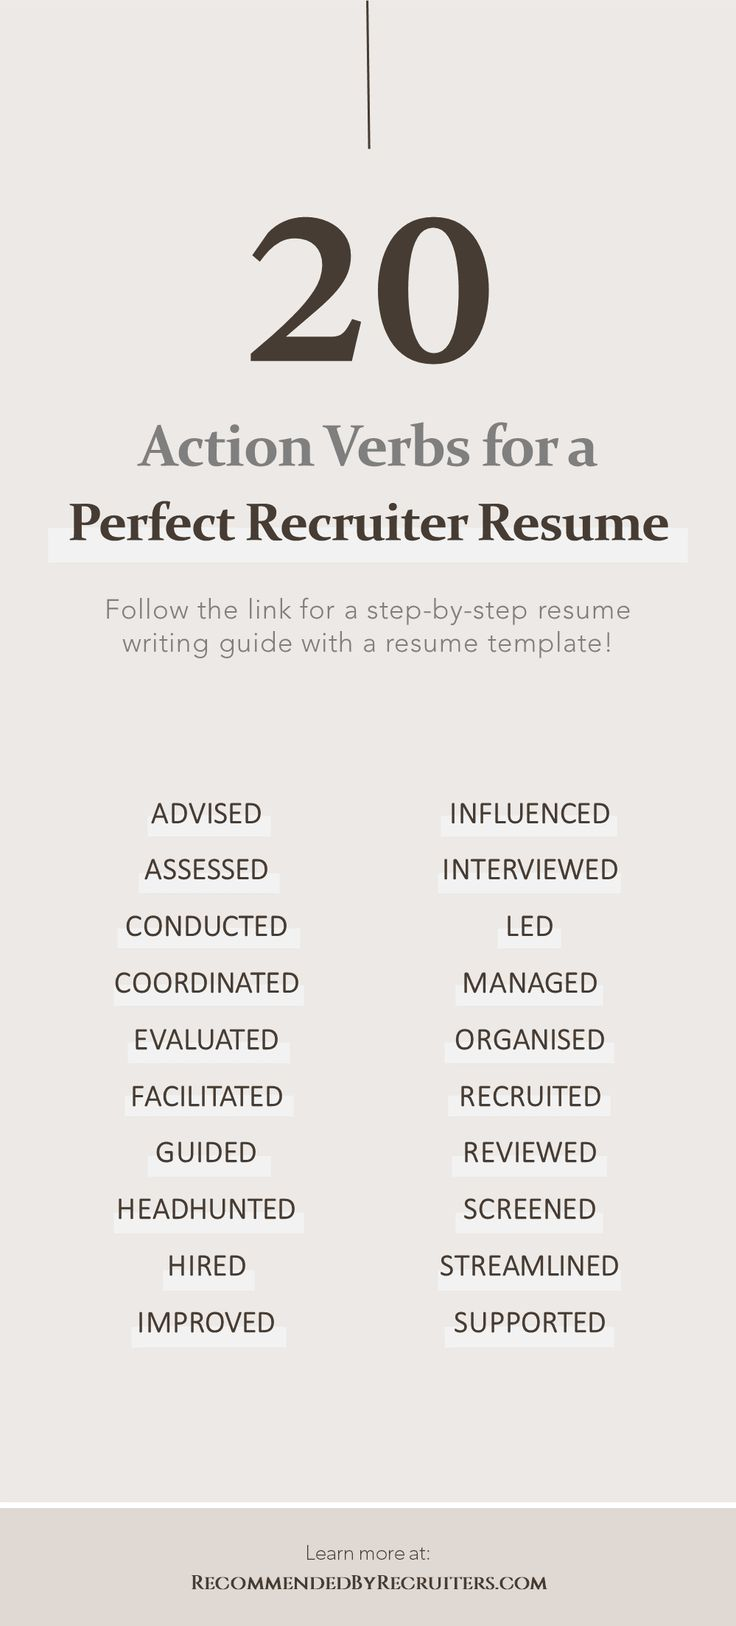 Resume Action Verbs, Power Words for Best Recruiter Resume